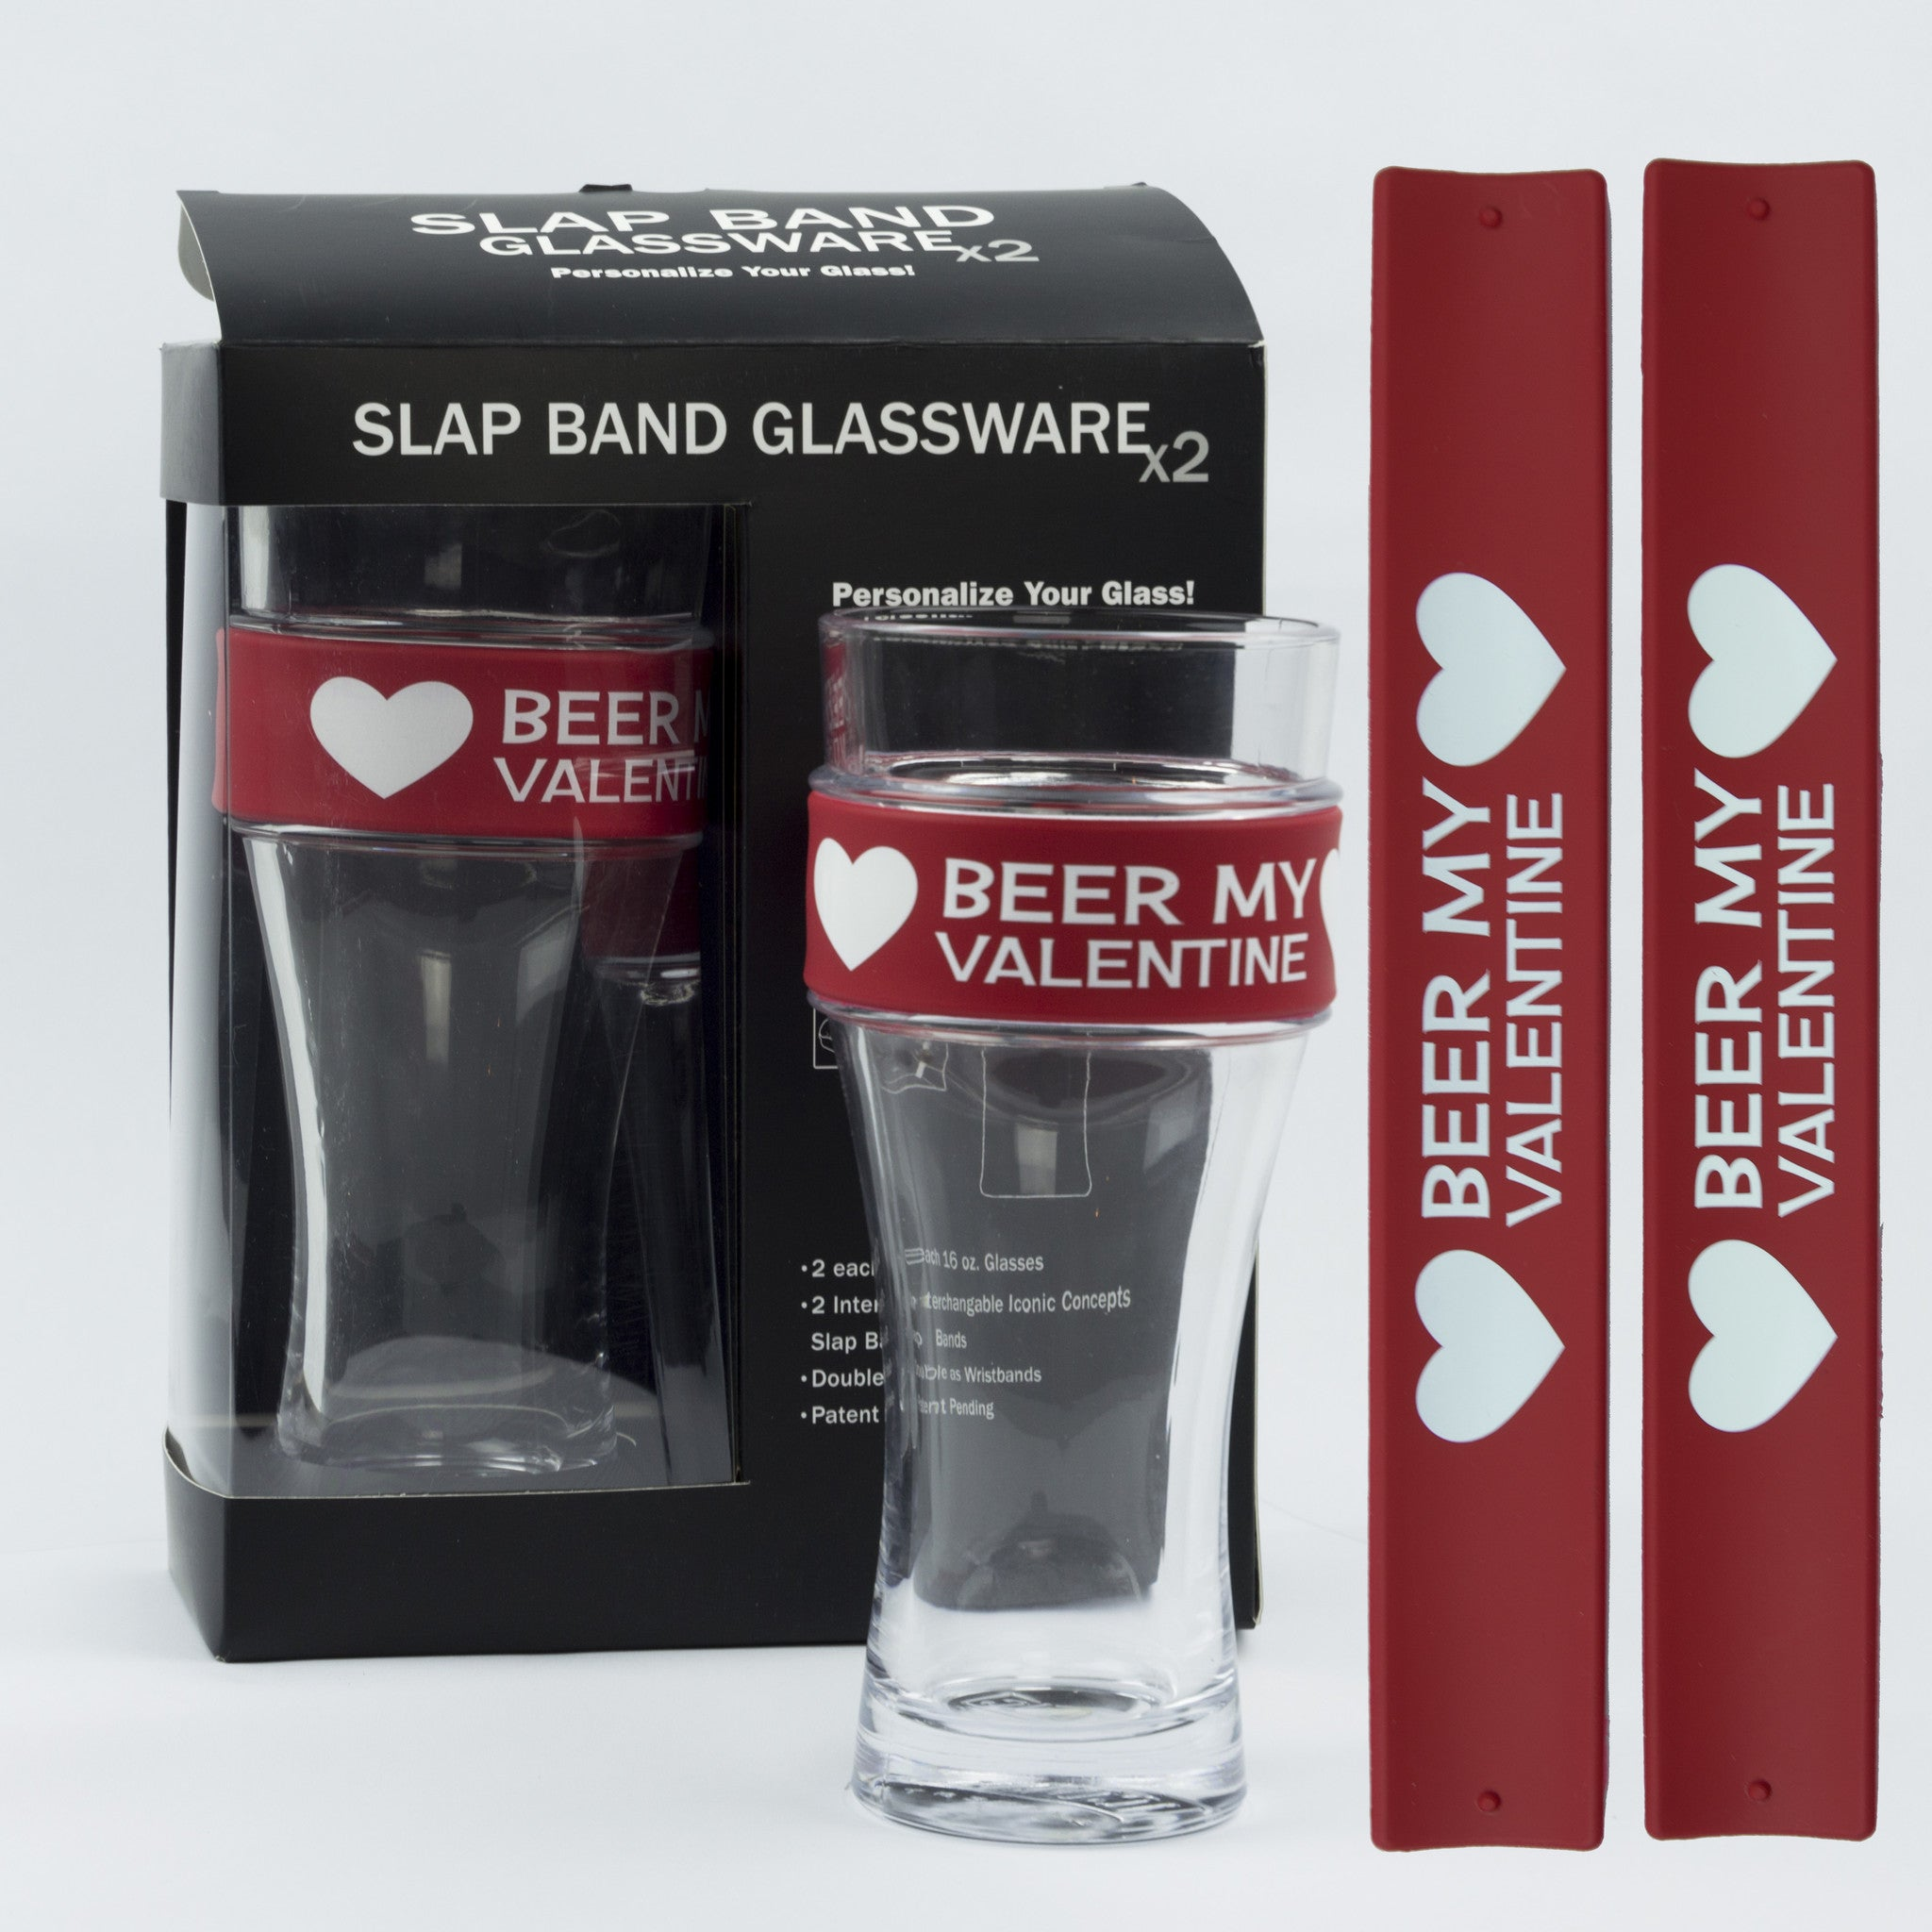 Valentines Day Slap Band Glassware - Beer My Valentine